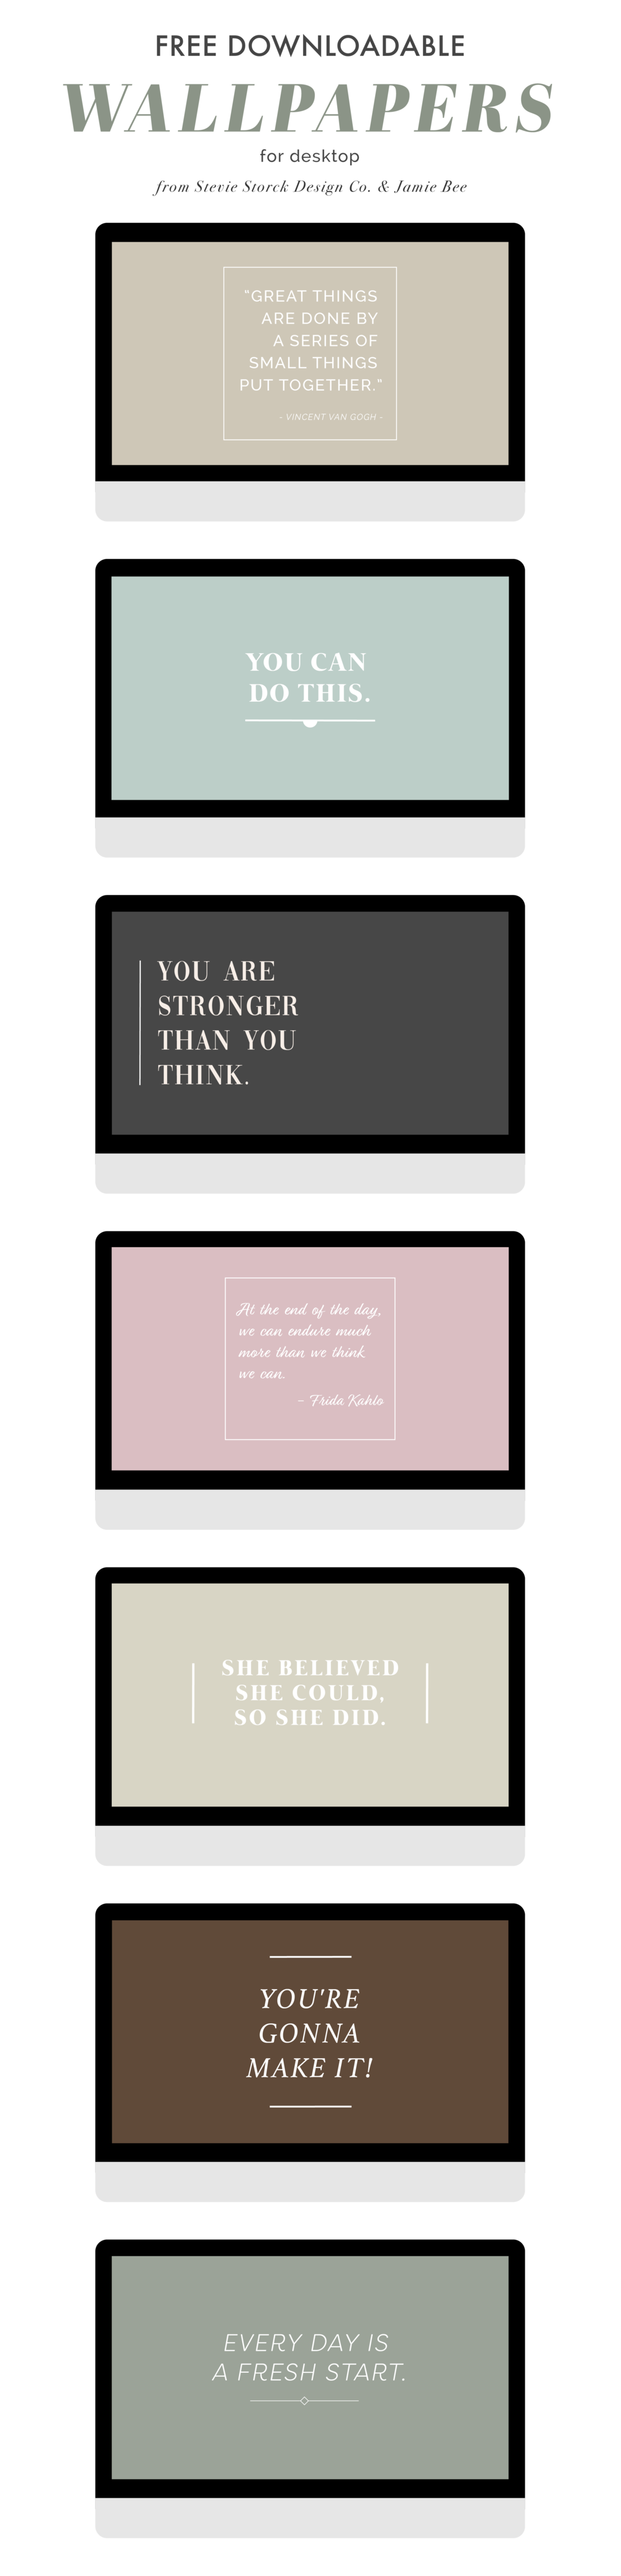 Free desktop wallpaper downloads! Choose from 7 modern, minimal wallpapers designed to inspire positivity, creativity and resilience. Or use all 7 as a screensaver slideshow, like I do! #inspo #inspirationalquotes #inspiration #motivation #quotes #blushpink #neutral #classic #modern #minimal #chic #elegant #pretty #feminine #girlboss #creative #entrepreneur #mindset #fridakahlo #vangogh #uplifting